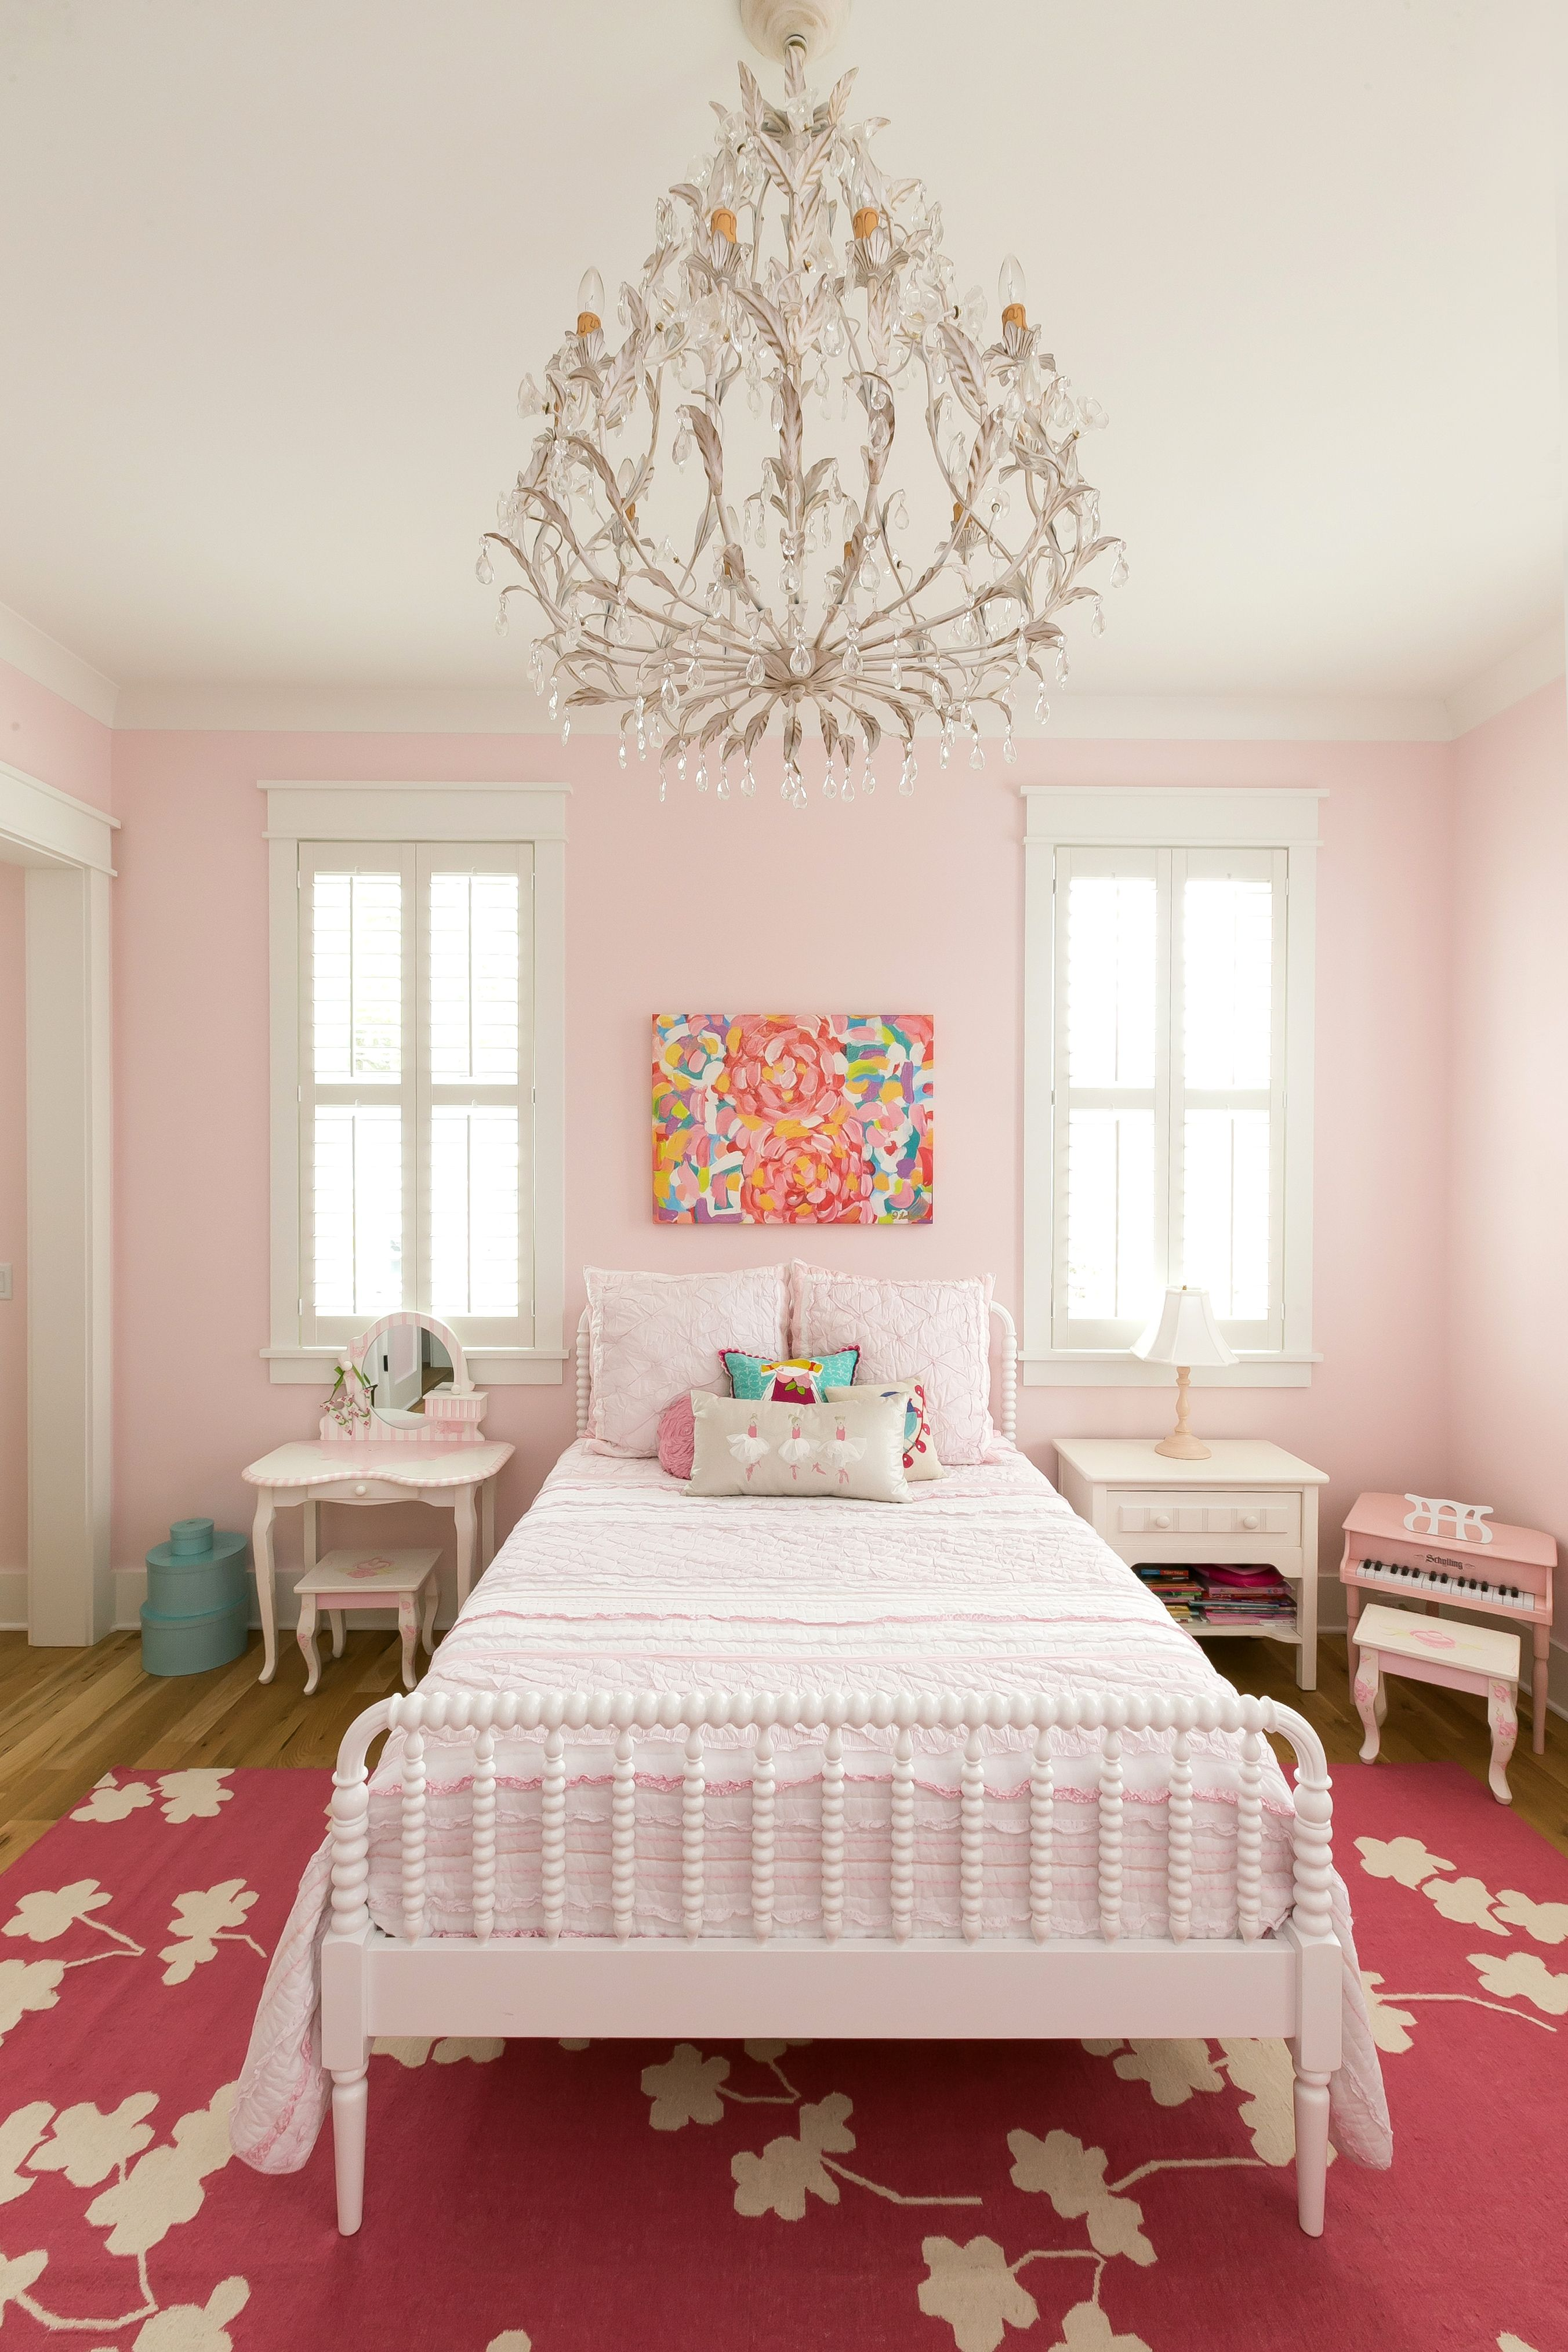 Girls room painted in Sherwin Williams Elephant Pink paint with a